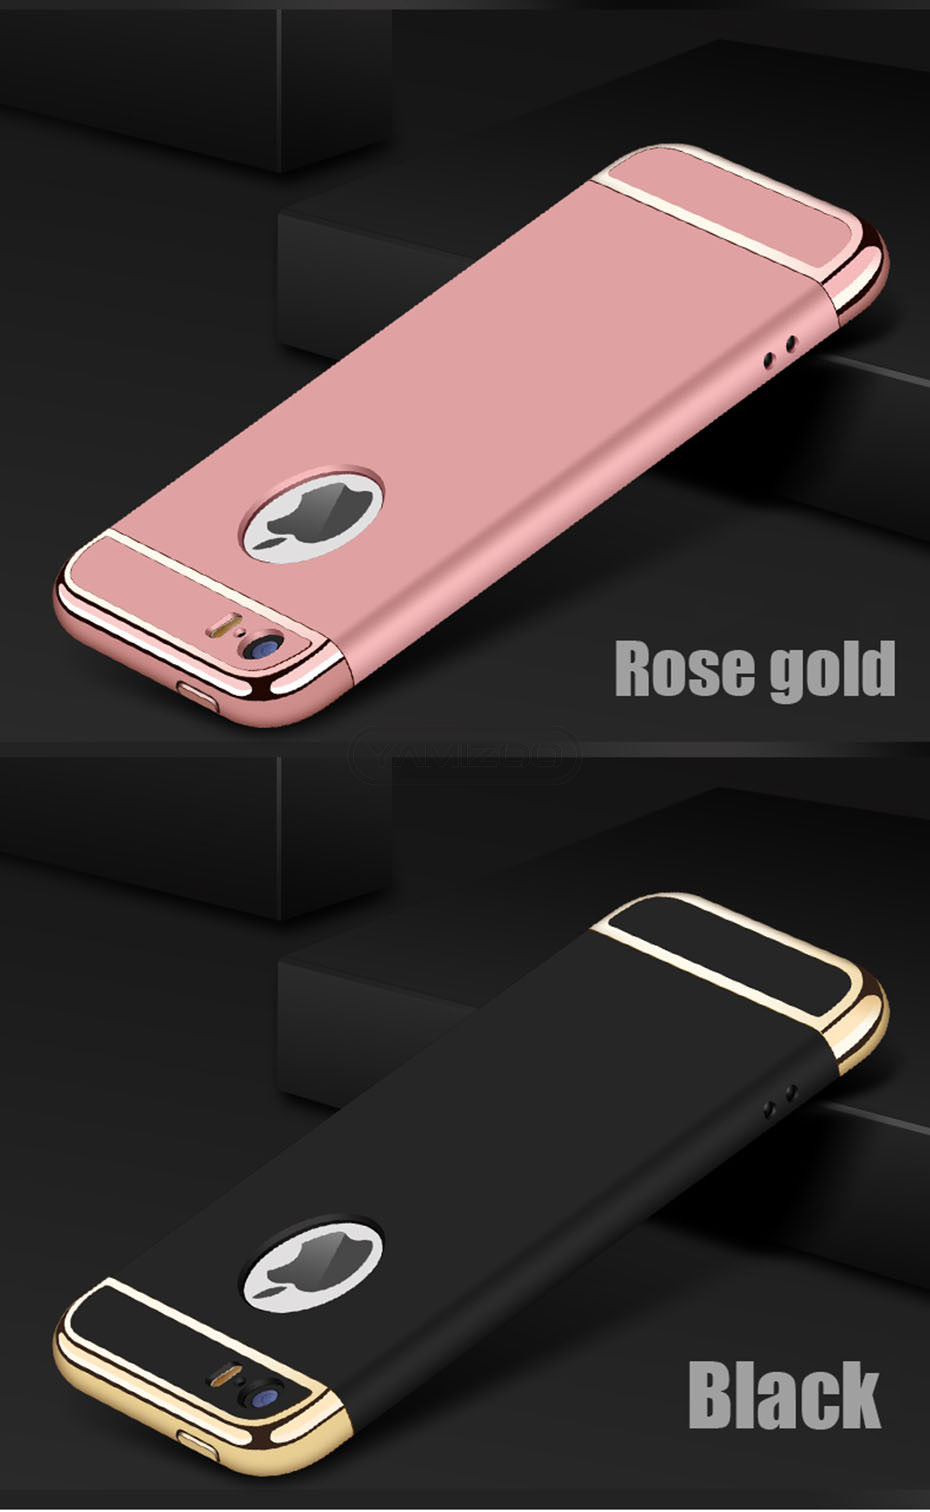 YAMIZOO 5s For iPhone se 5 Case 360 protection Phone Cases On Luxury Full Hard Plastic Coque Back Cover For iPhone 5s se 5 Case (1)